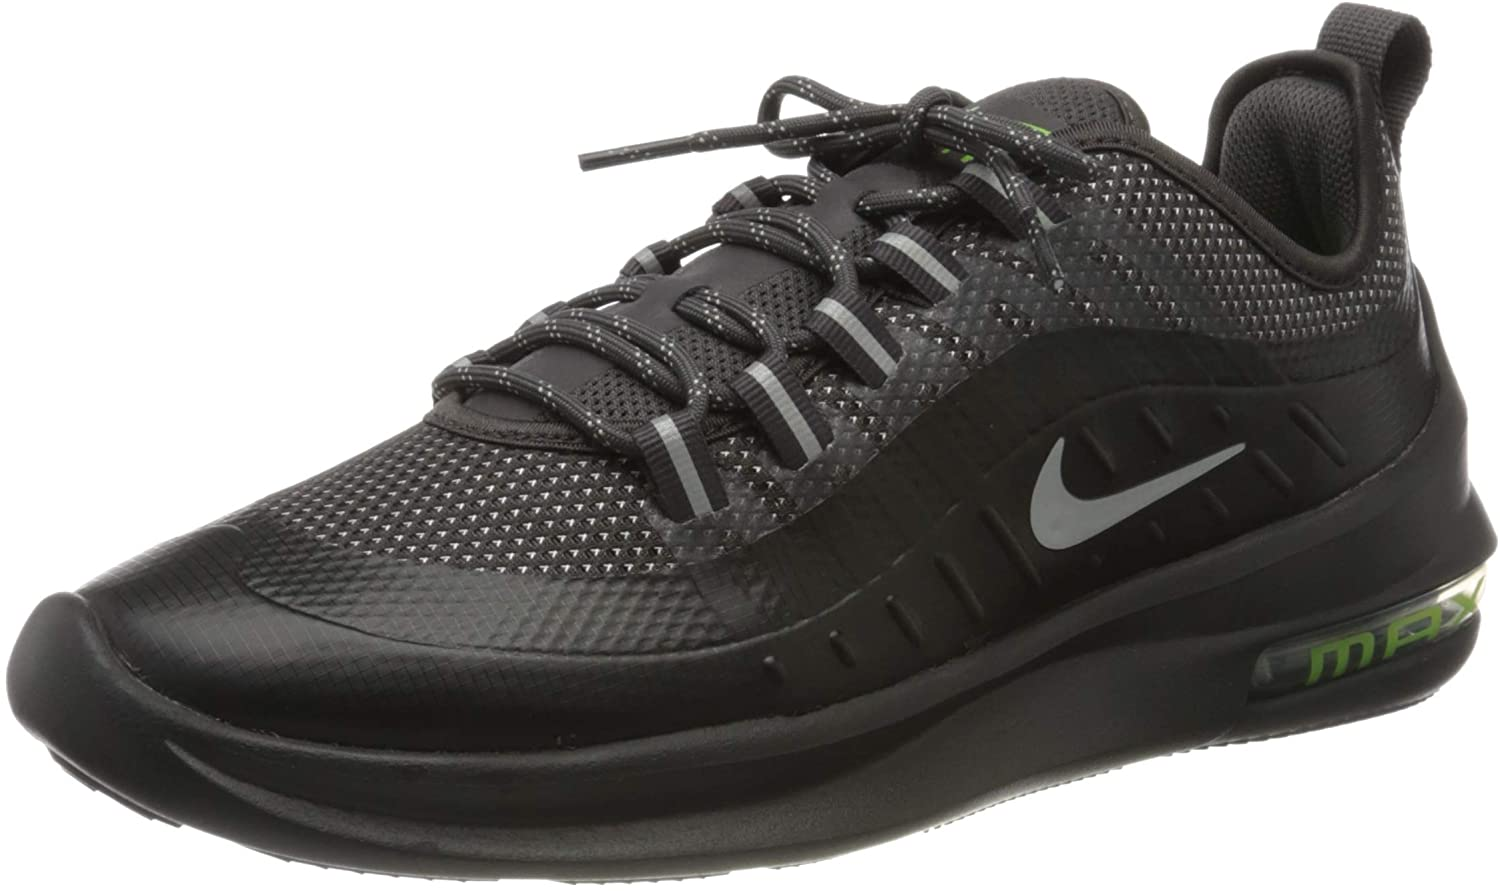 Nike Mens Air Free Shipping Cheap Bargain Gift Max Axis Prem Shoes Aa2148 Running Price reduction